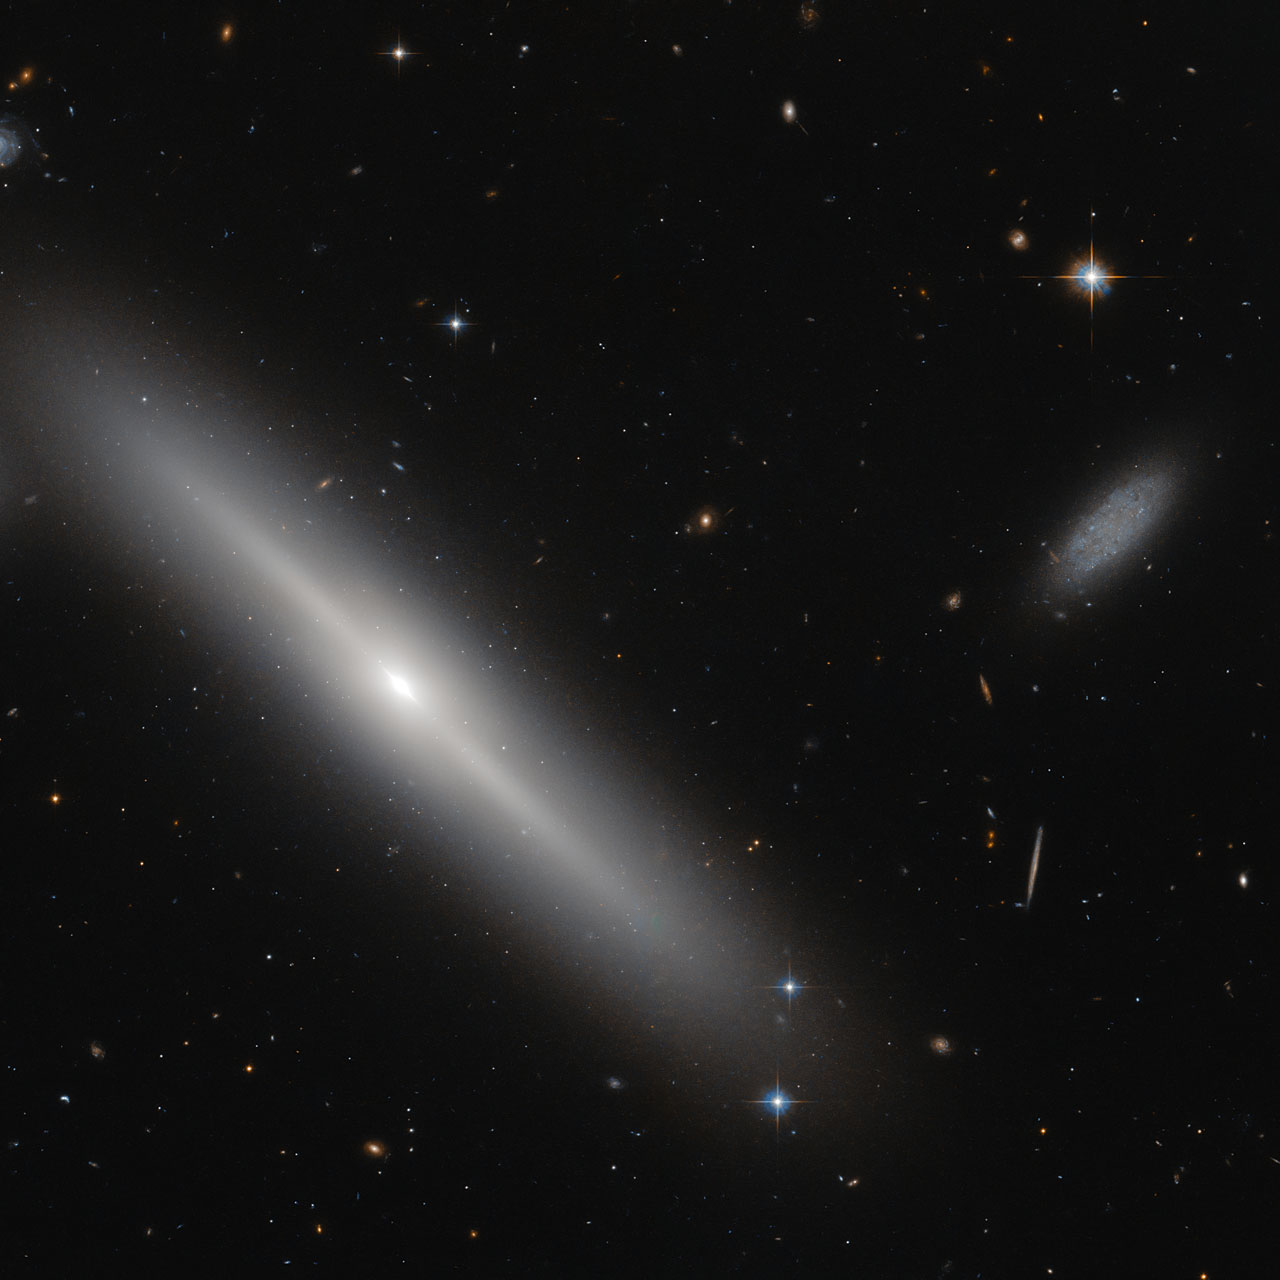 Hubble Sees A Swarm Of Ancient Star Clusters Around A Galaxy